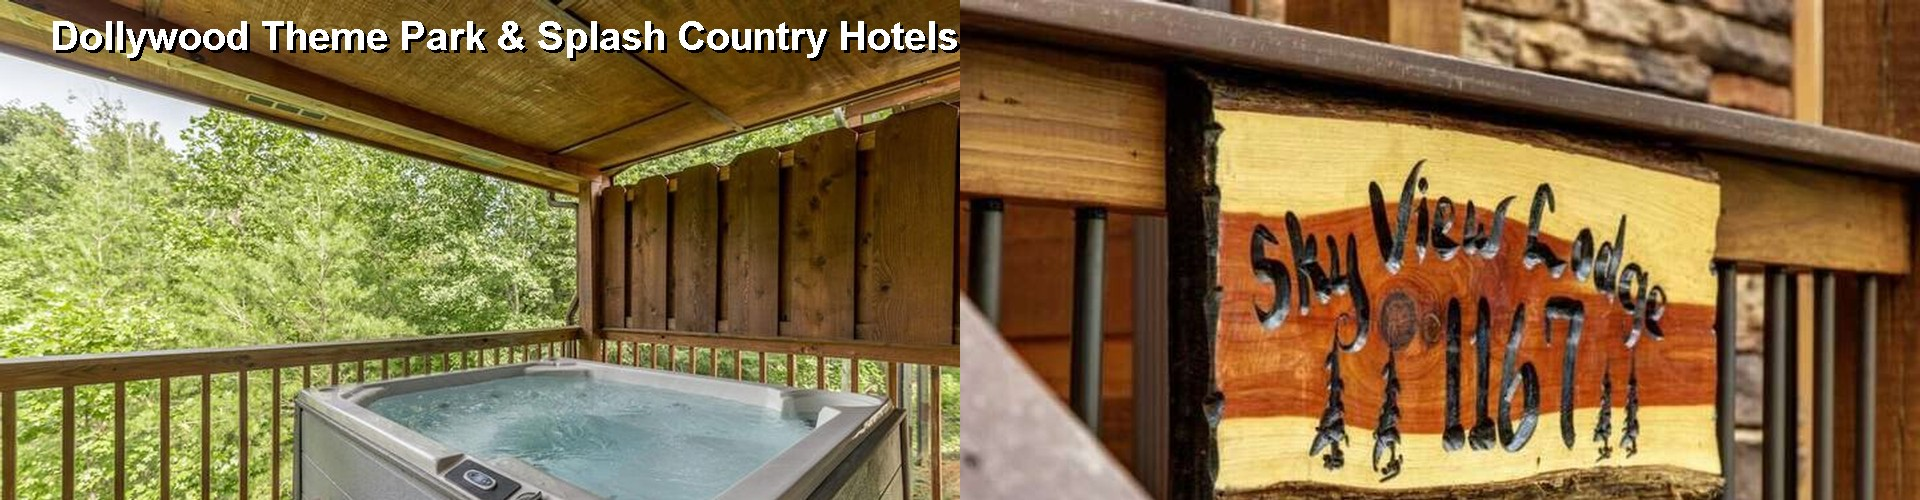 5 Best Hotels near Dollywood Theme Park & Splash Country